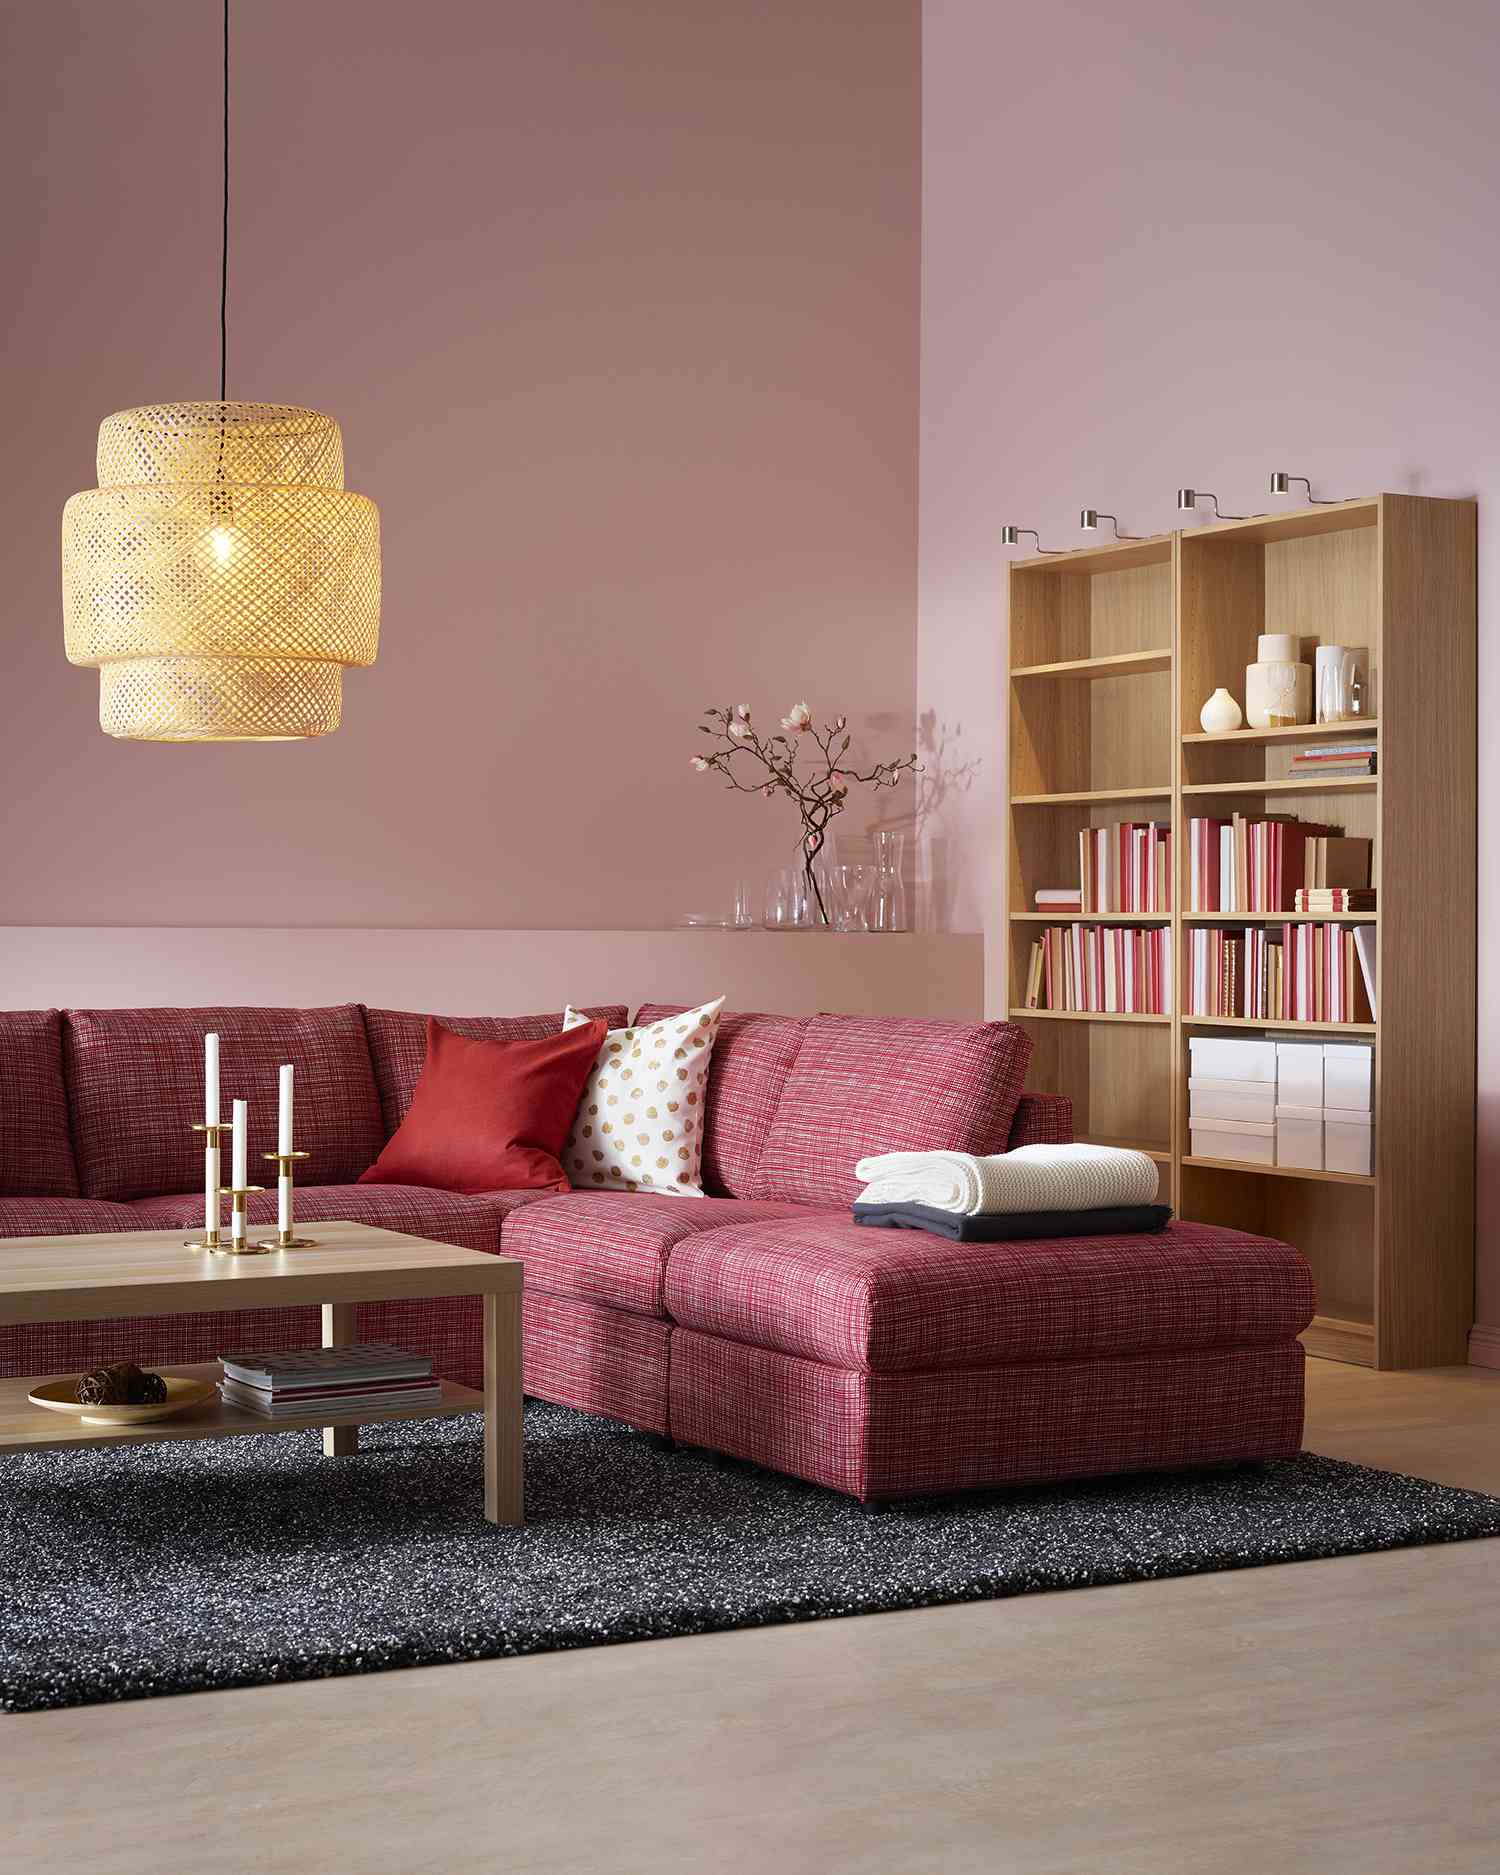 Pink living room with red sectional sofa and warm wood bookcases